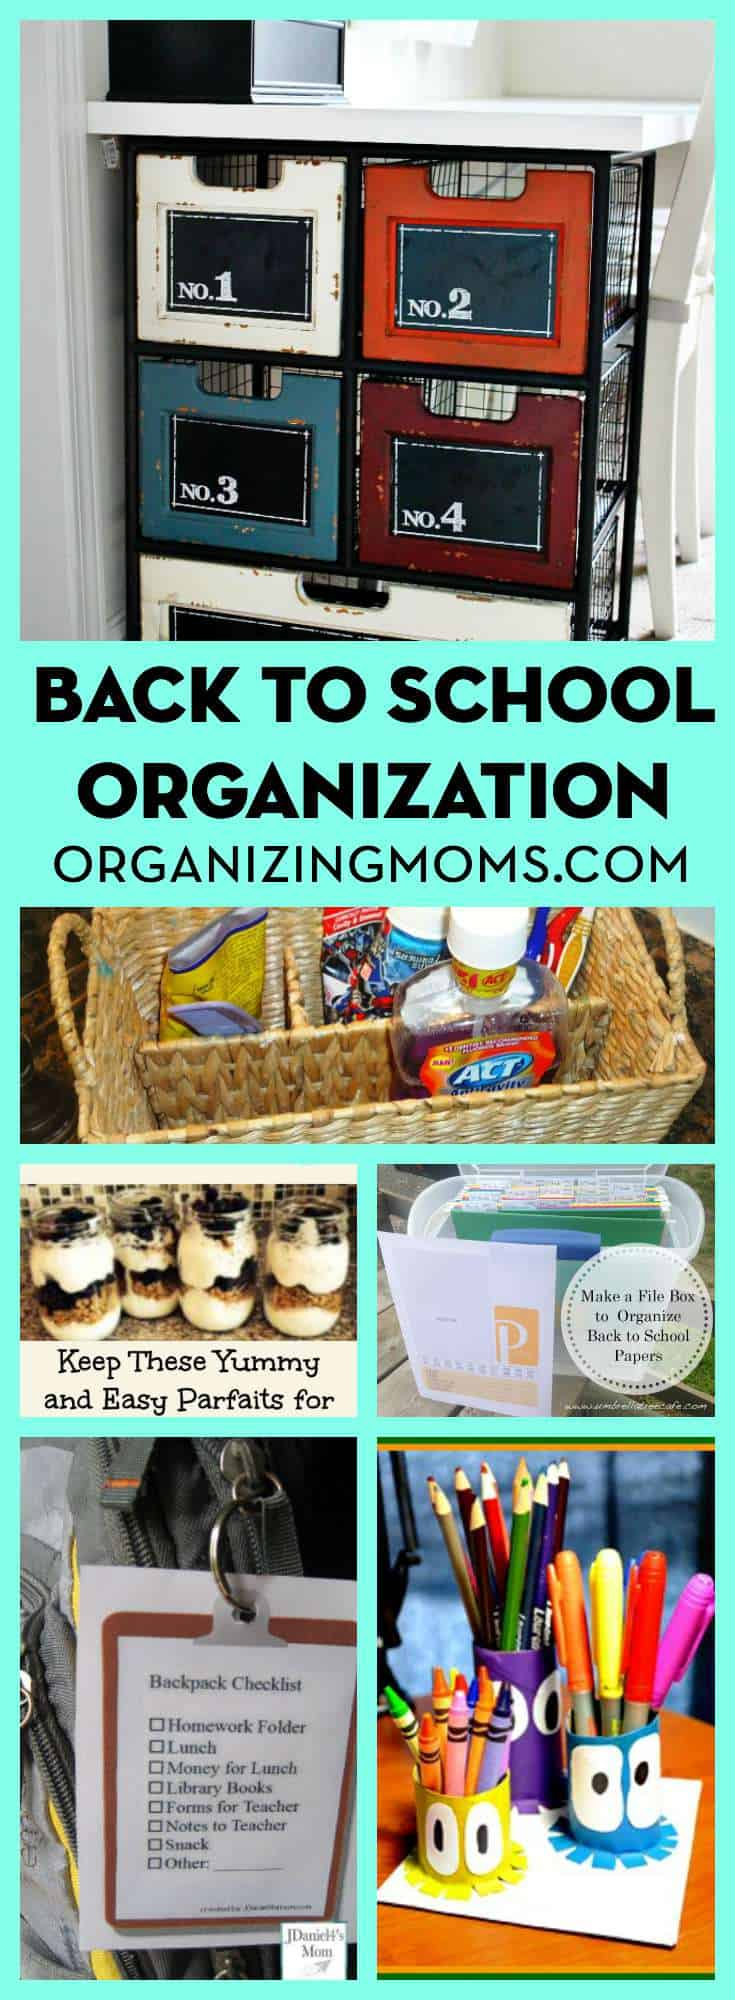 A huge list of back to school organization ideas! This will help you get ready for the new school year, and feel more organized!